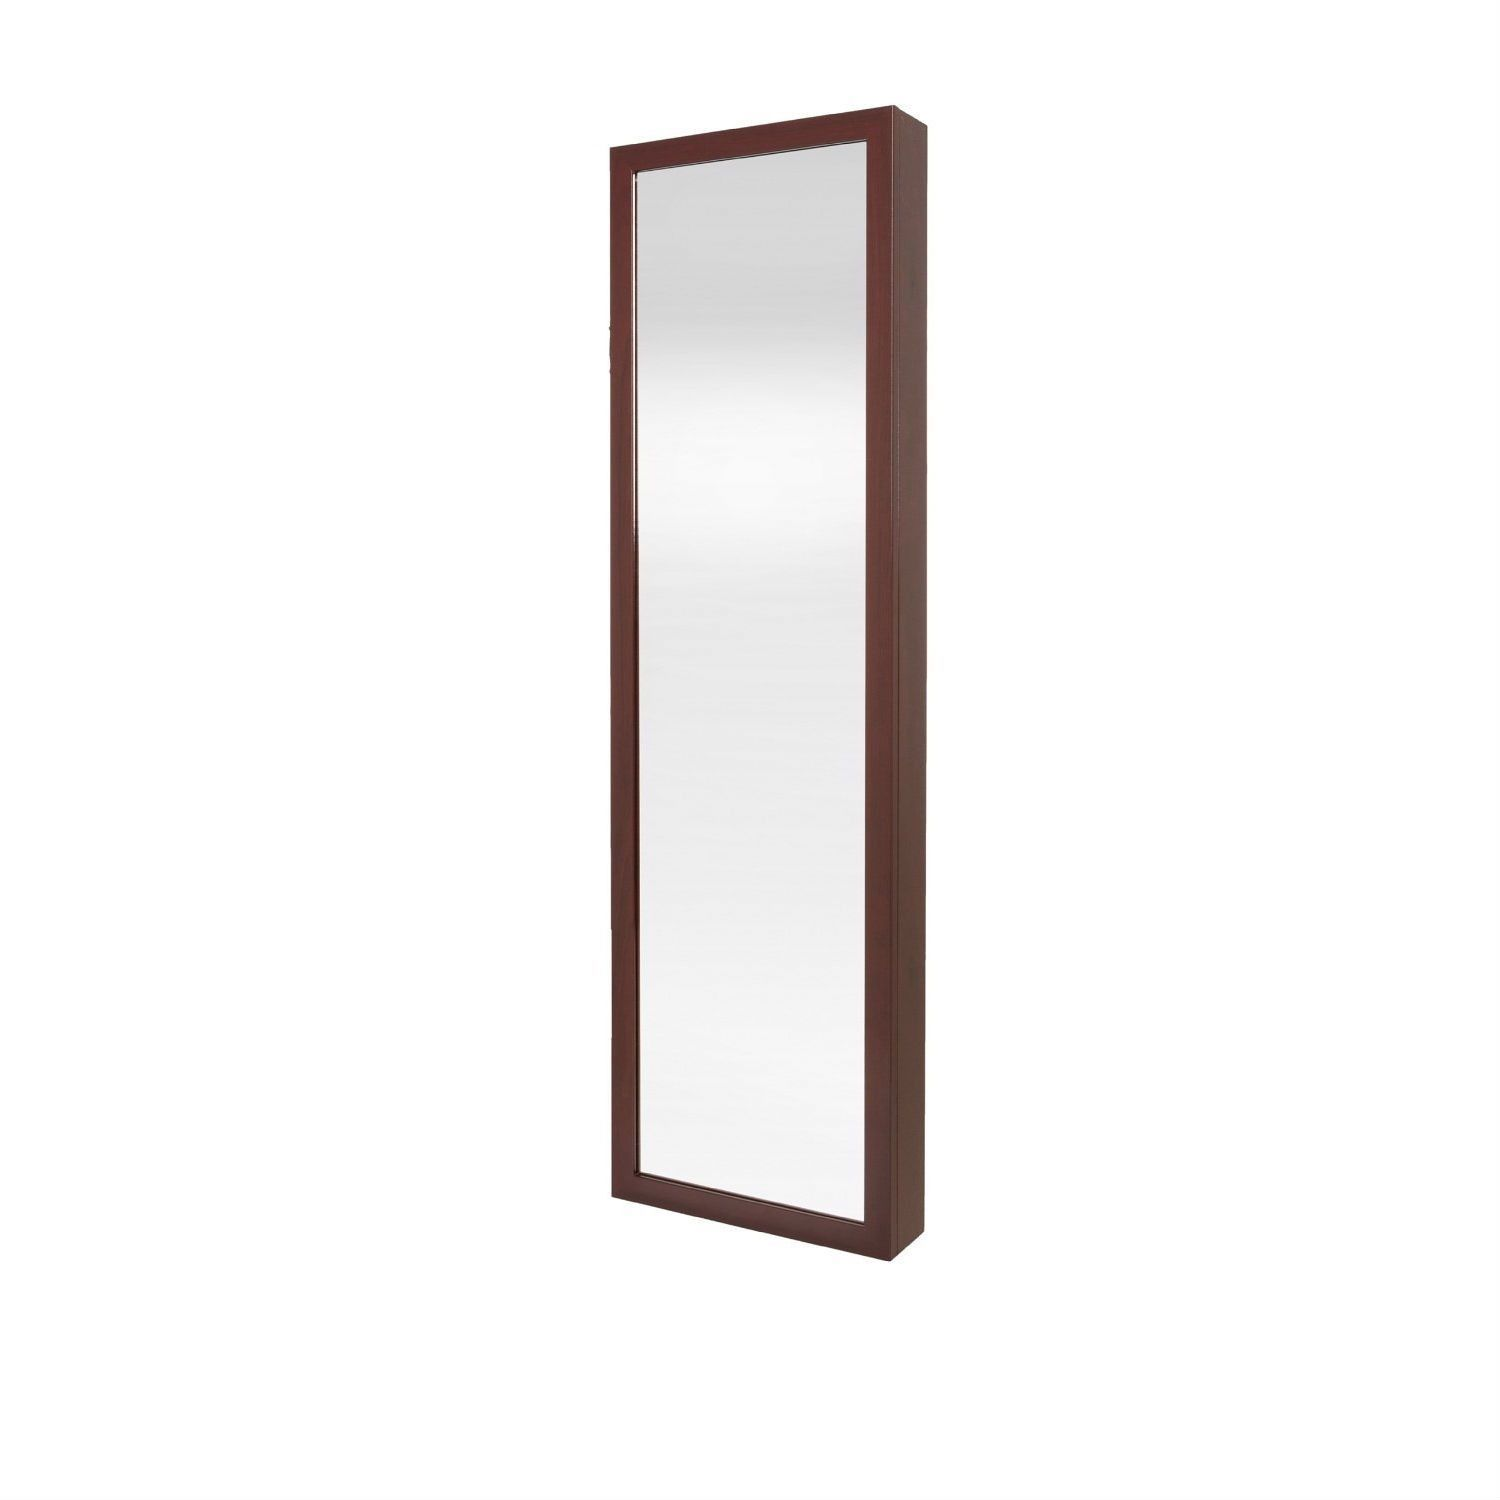 Beau Wall / Door Mount Jewelry Armoire / Full Length Mirror In Cherry Finish